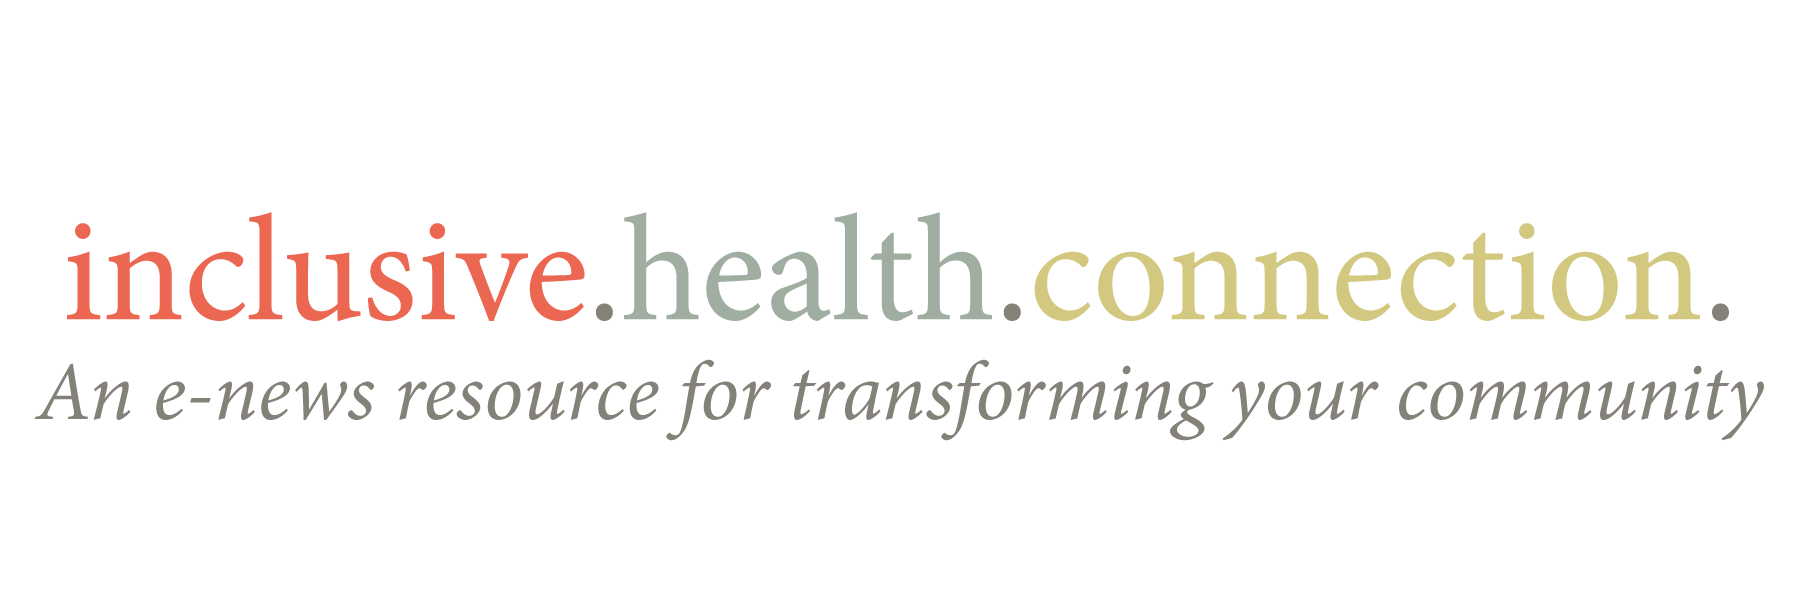 inclusive health connection logo